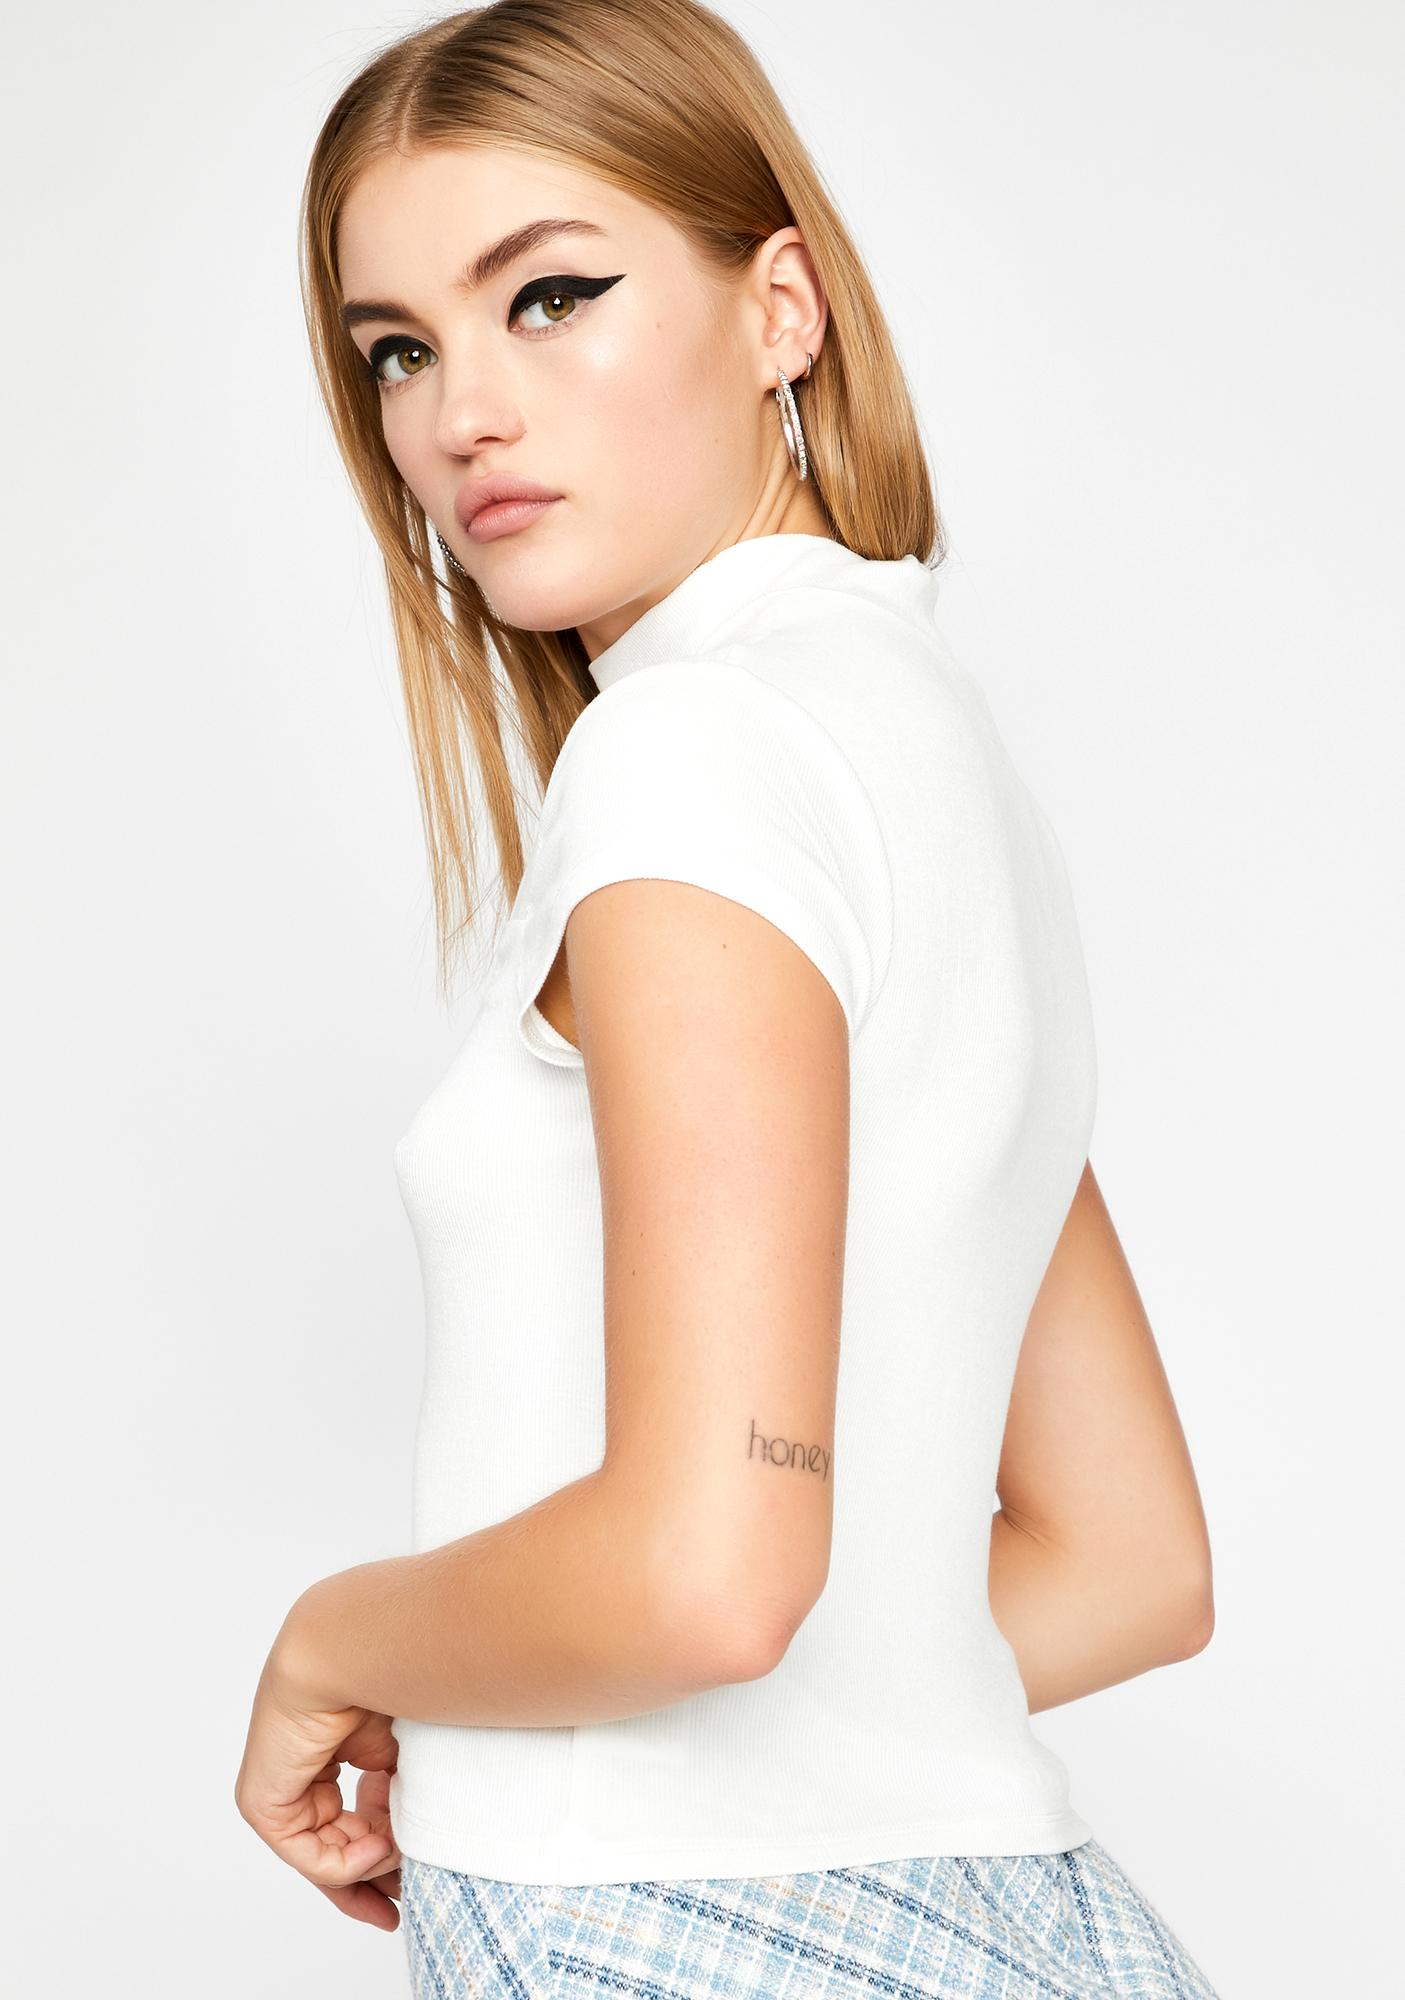 Icy Call Me Babe Cut Out Top